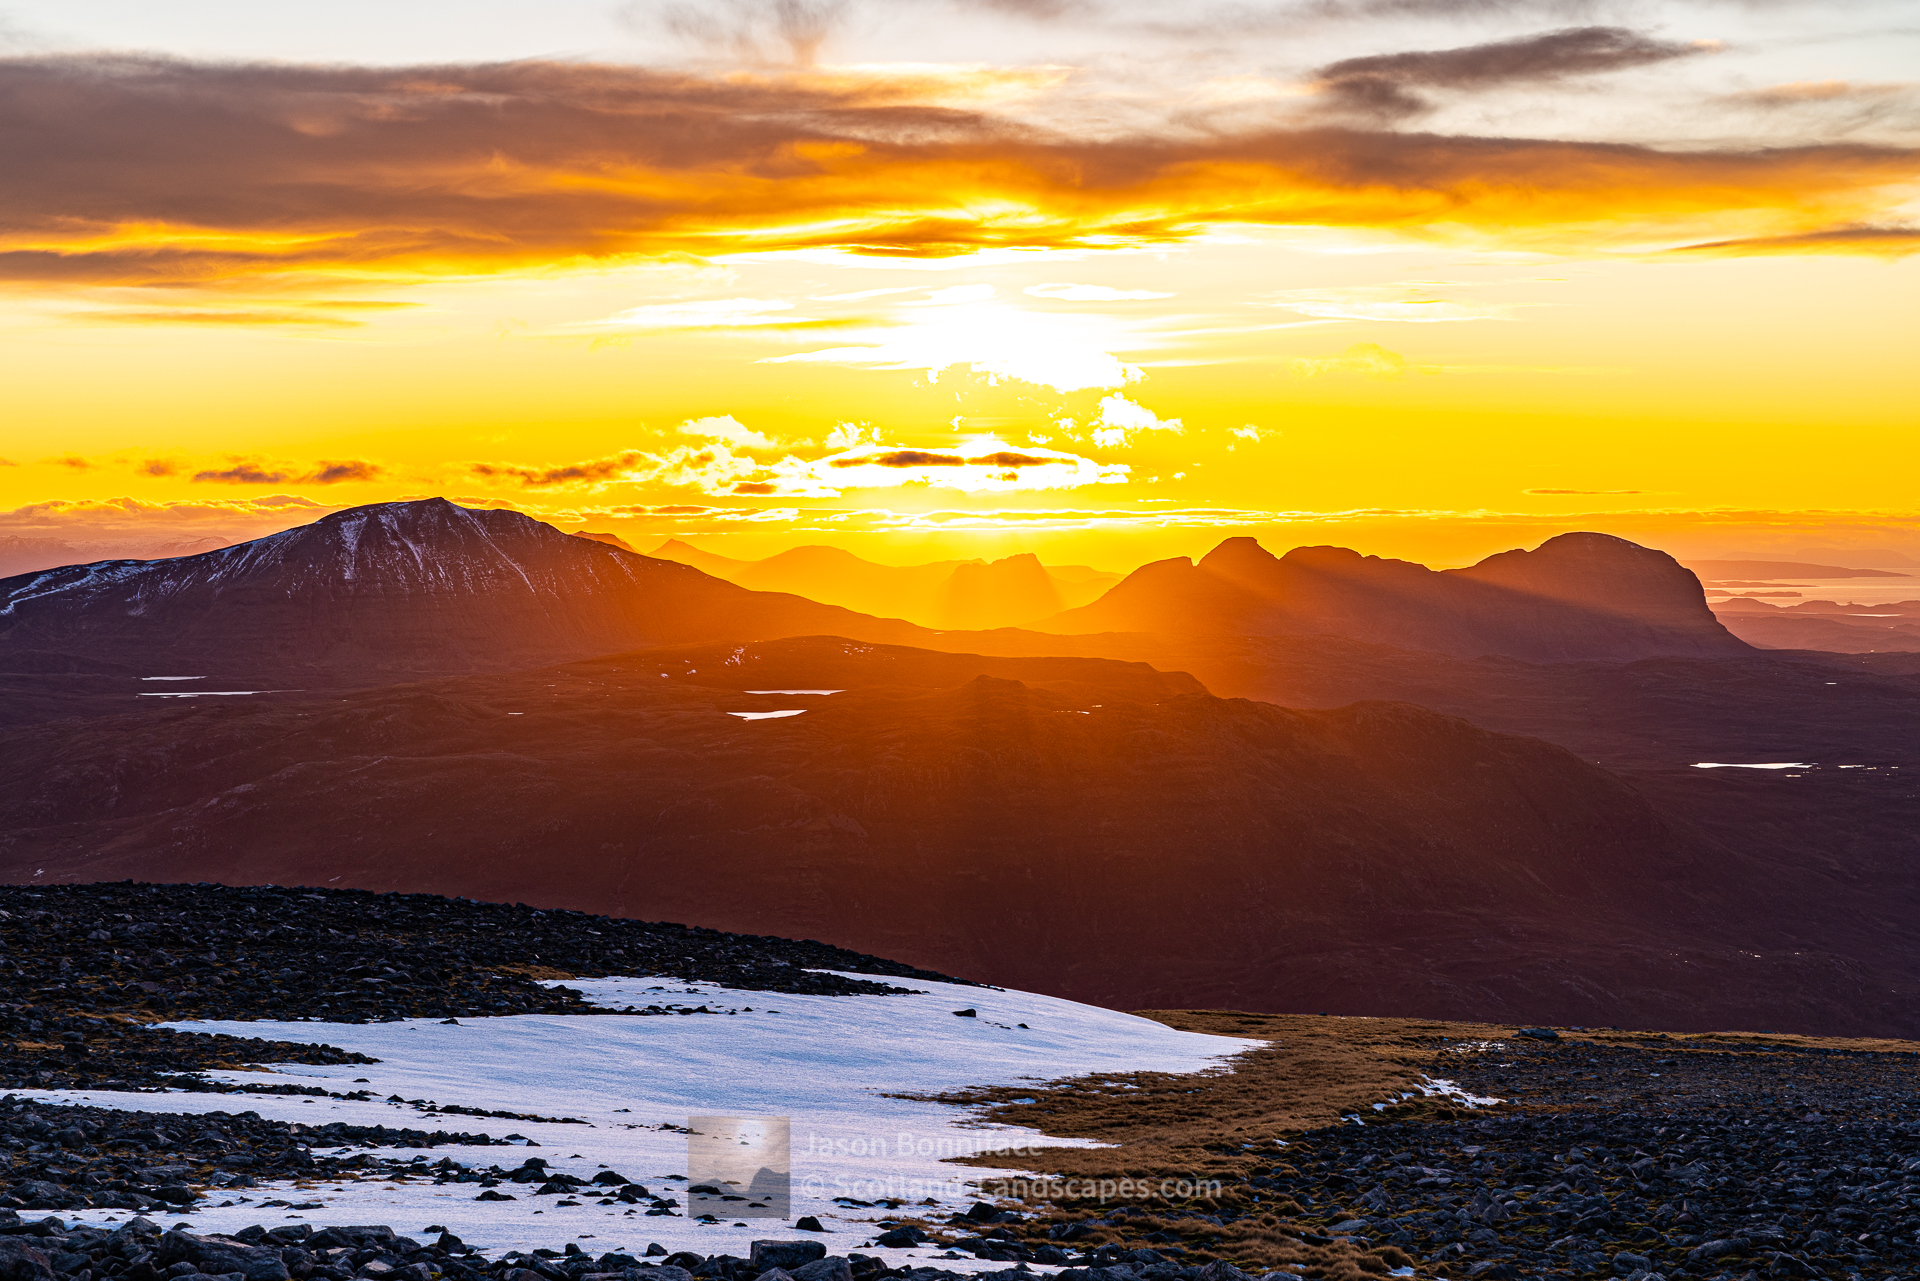 Assynt Setting Sun, Canisp, Stac Pollaidh and Suilven, Assynt & Ullapool